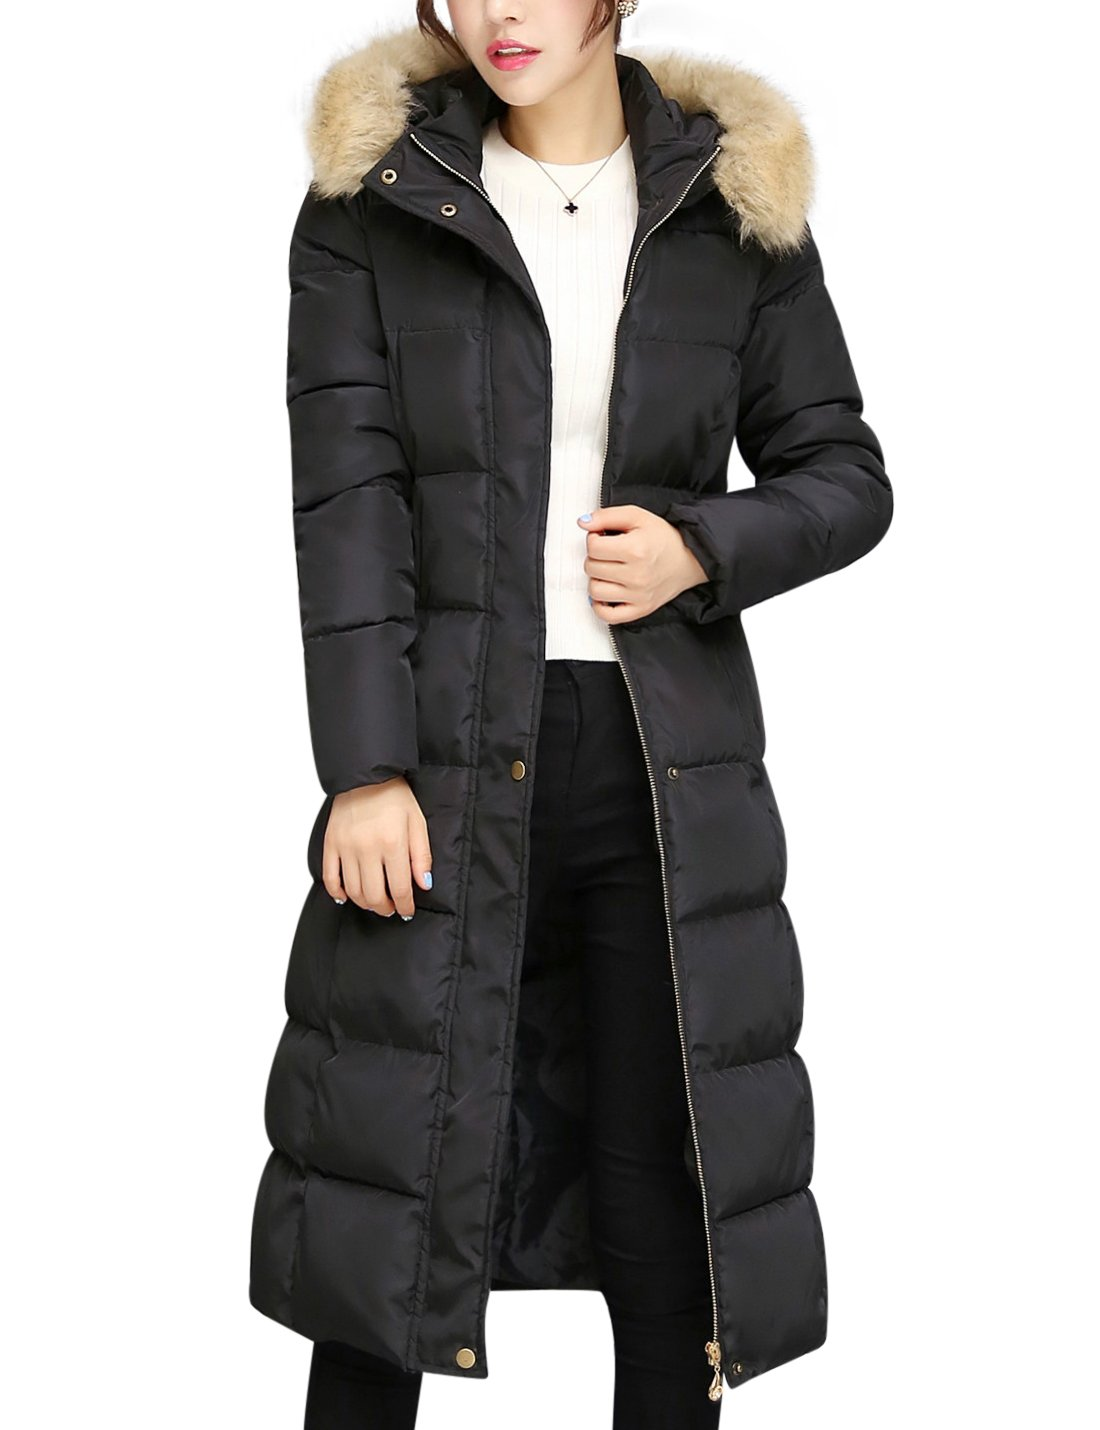 Tanming Women's Winter Cotton Padded Long Coat Outerwear With Fur Trim Hood (Large, Black)